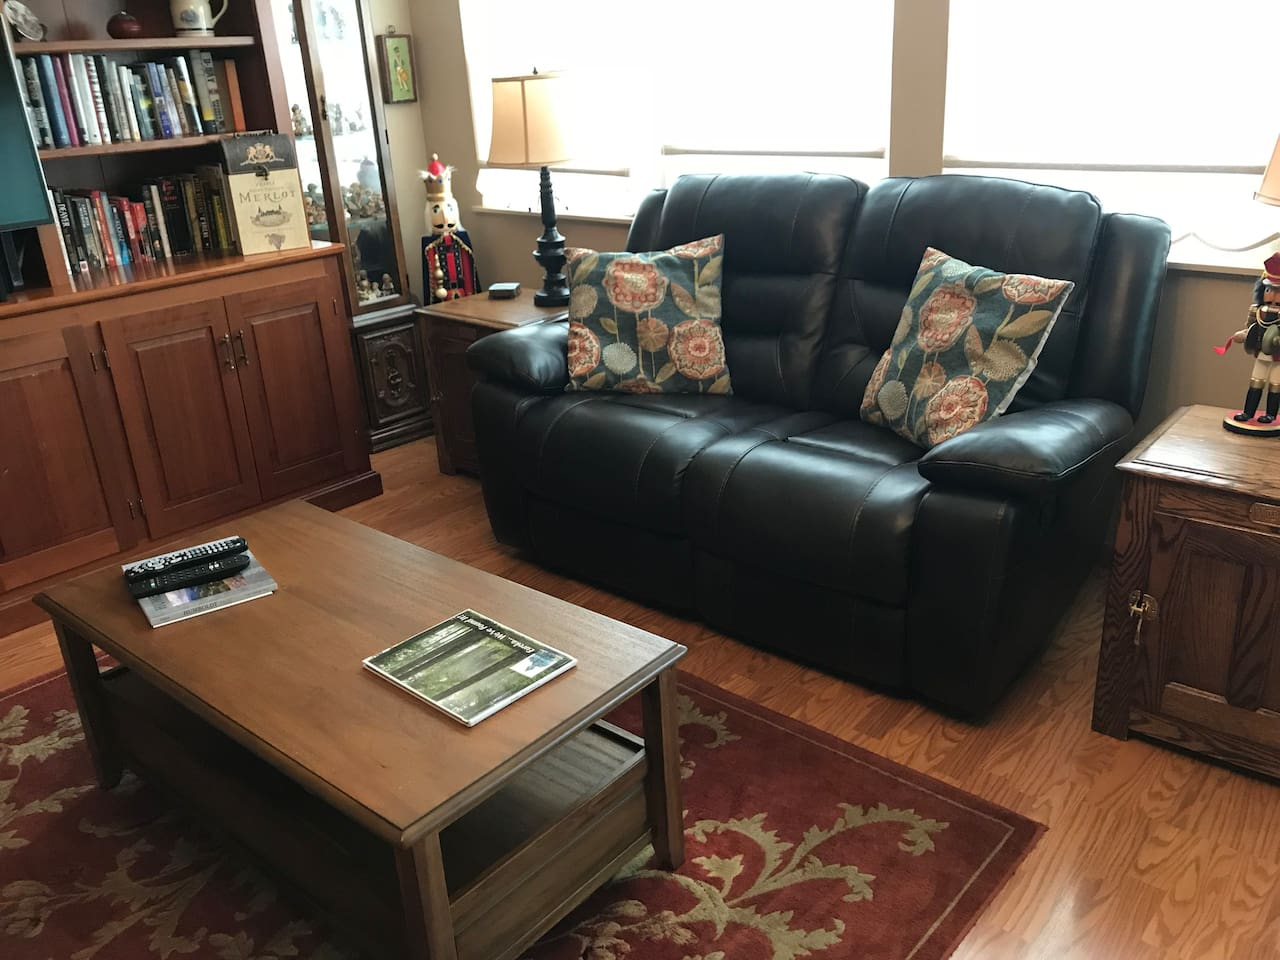 Comfy leather couch with recliners